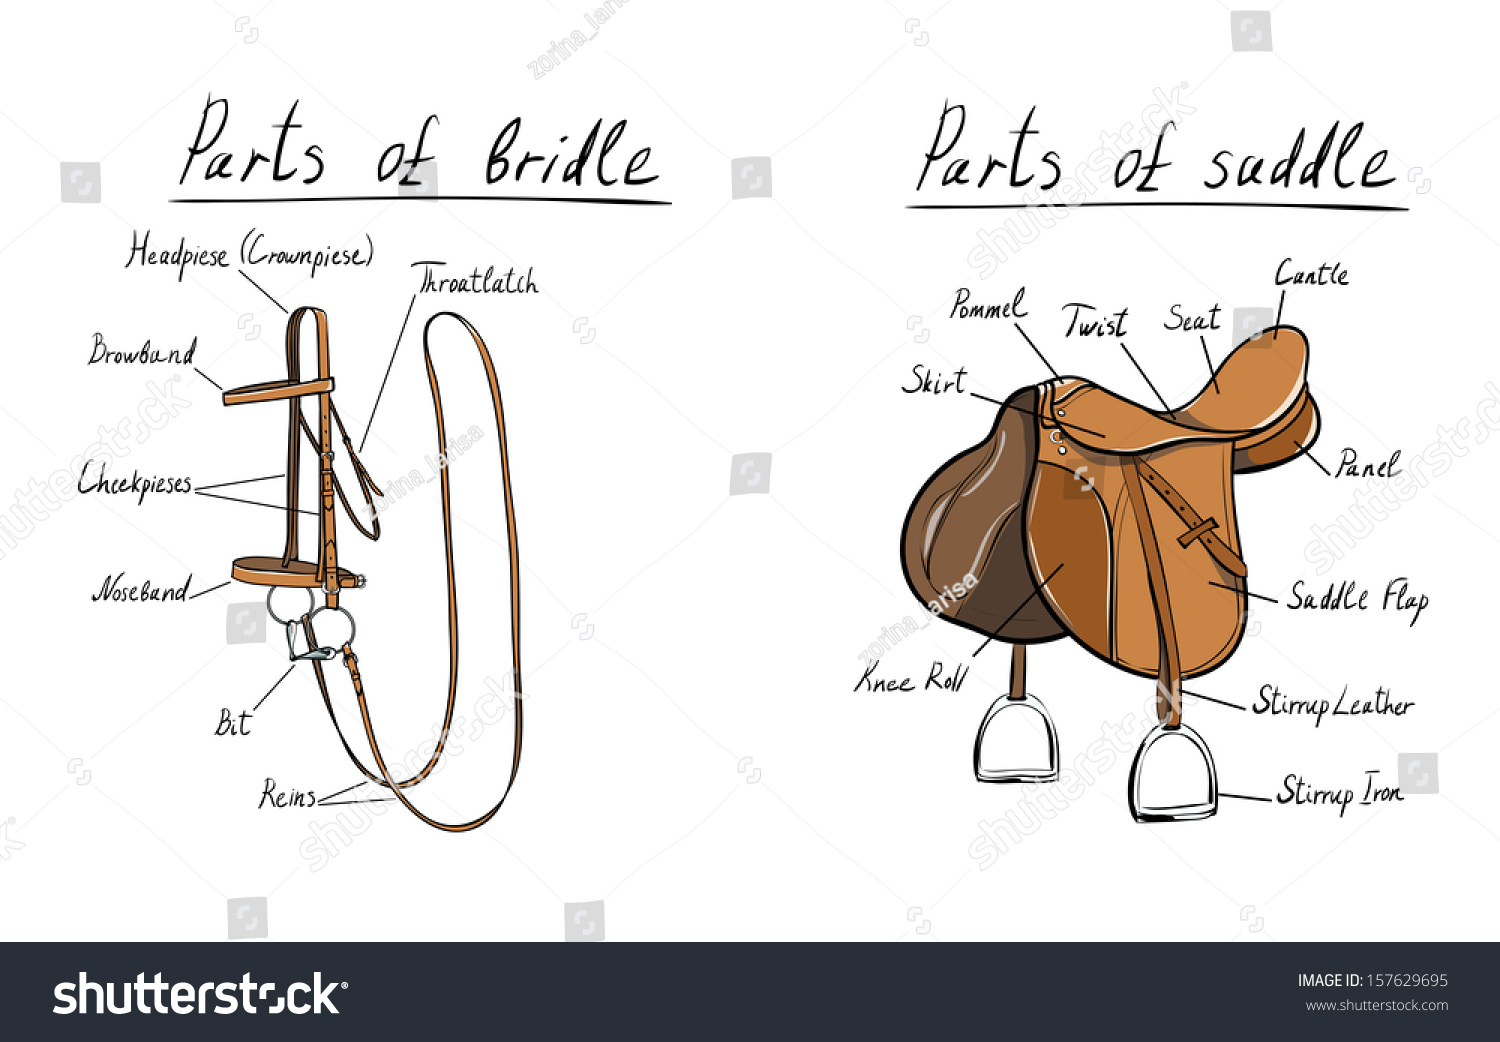 Parts Of Saddle And Bridle Stock Photo